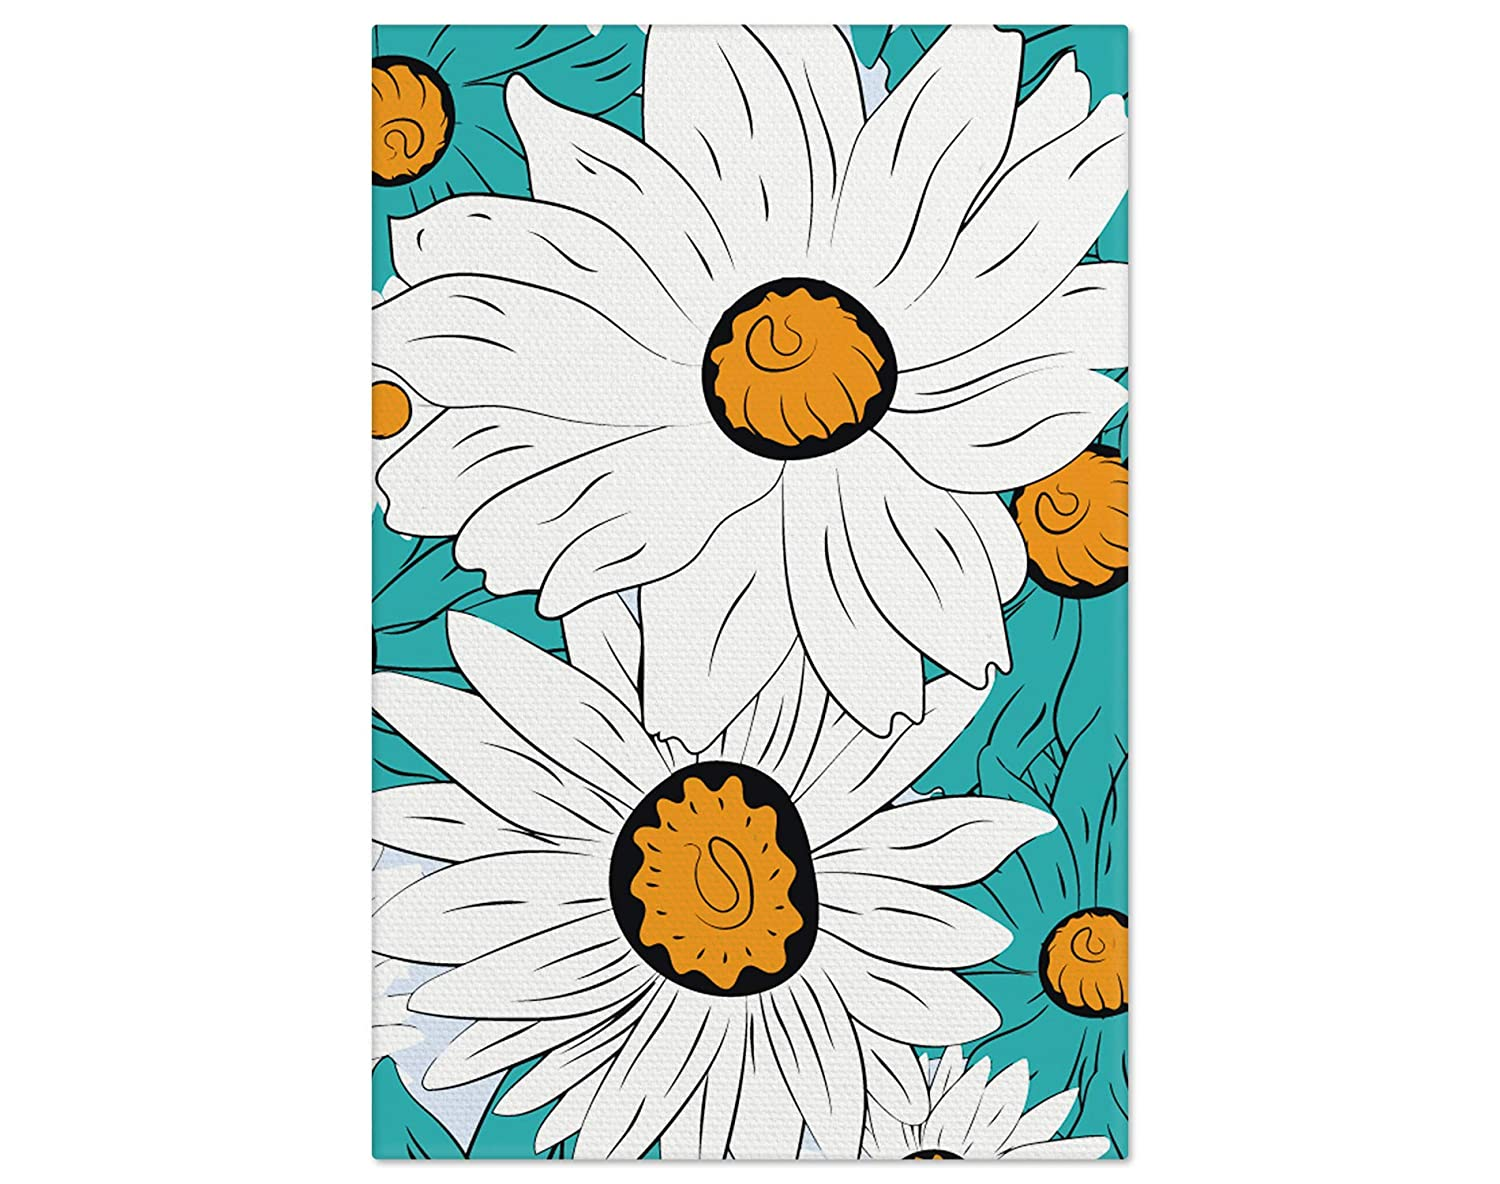 Flowers Home Decor DIY Adult Floral Painting by Numbers White Flowers Picture Divided by Numbers Kit for Adult with Unique Design Perfect Gift